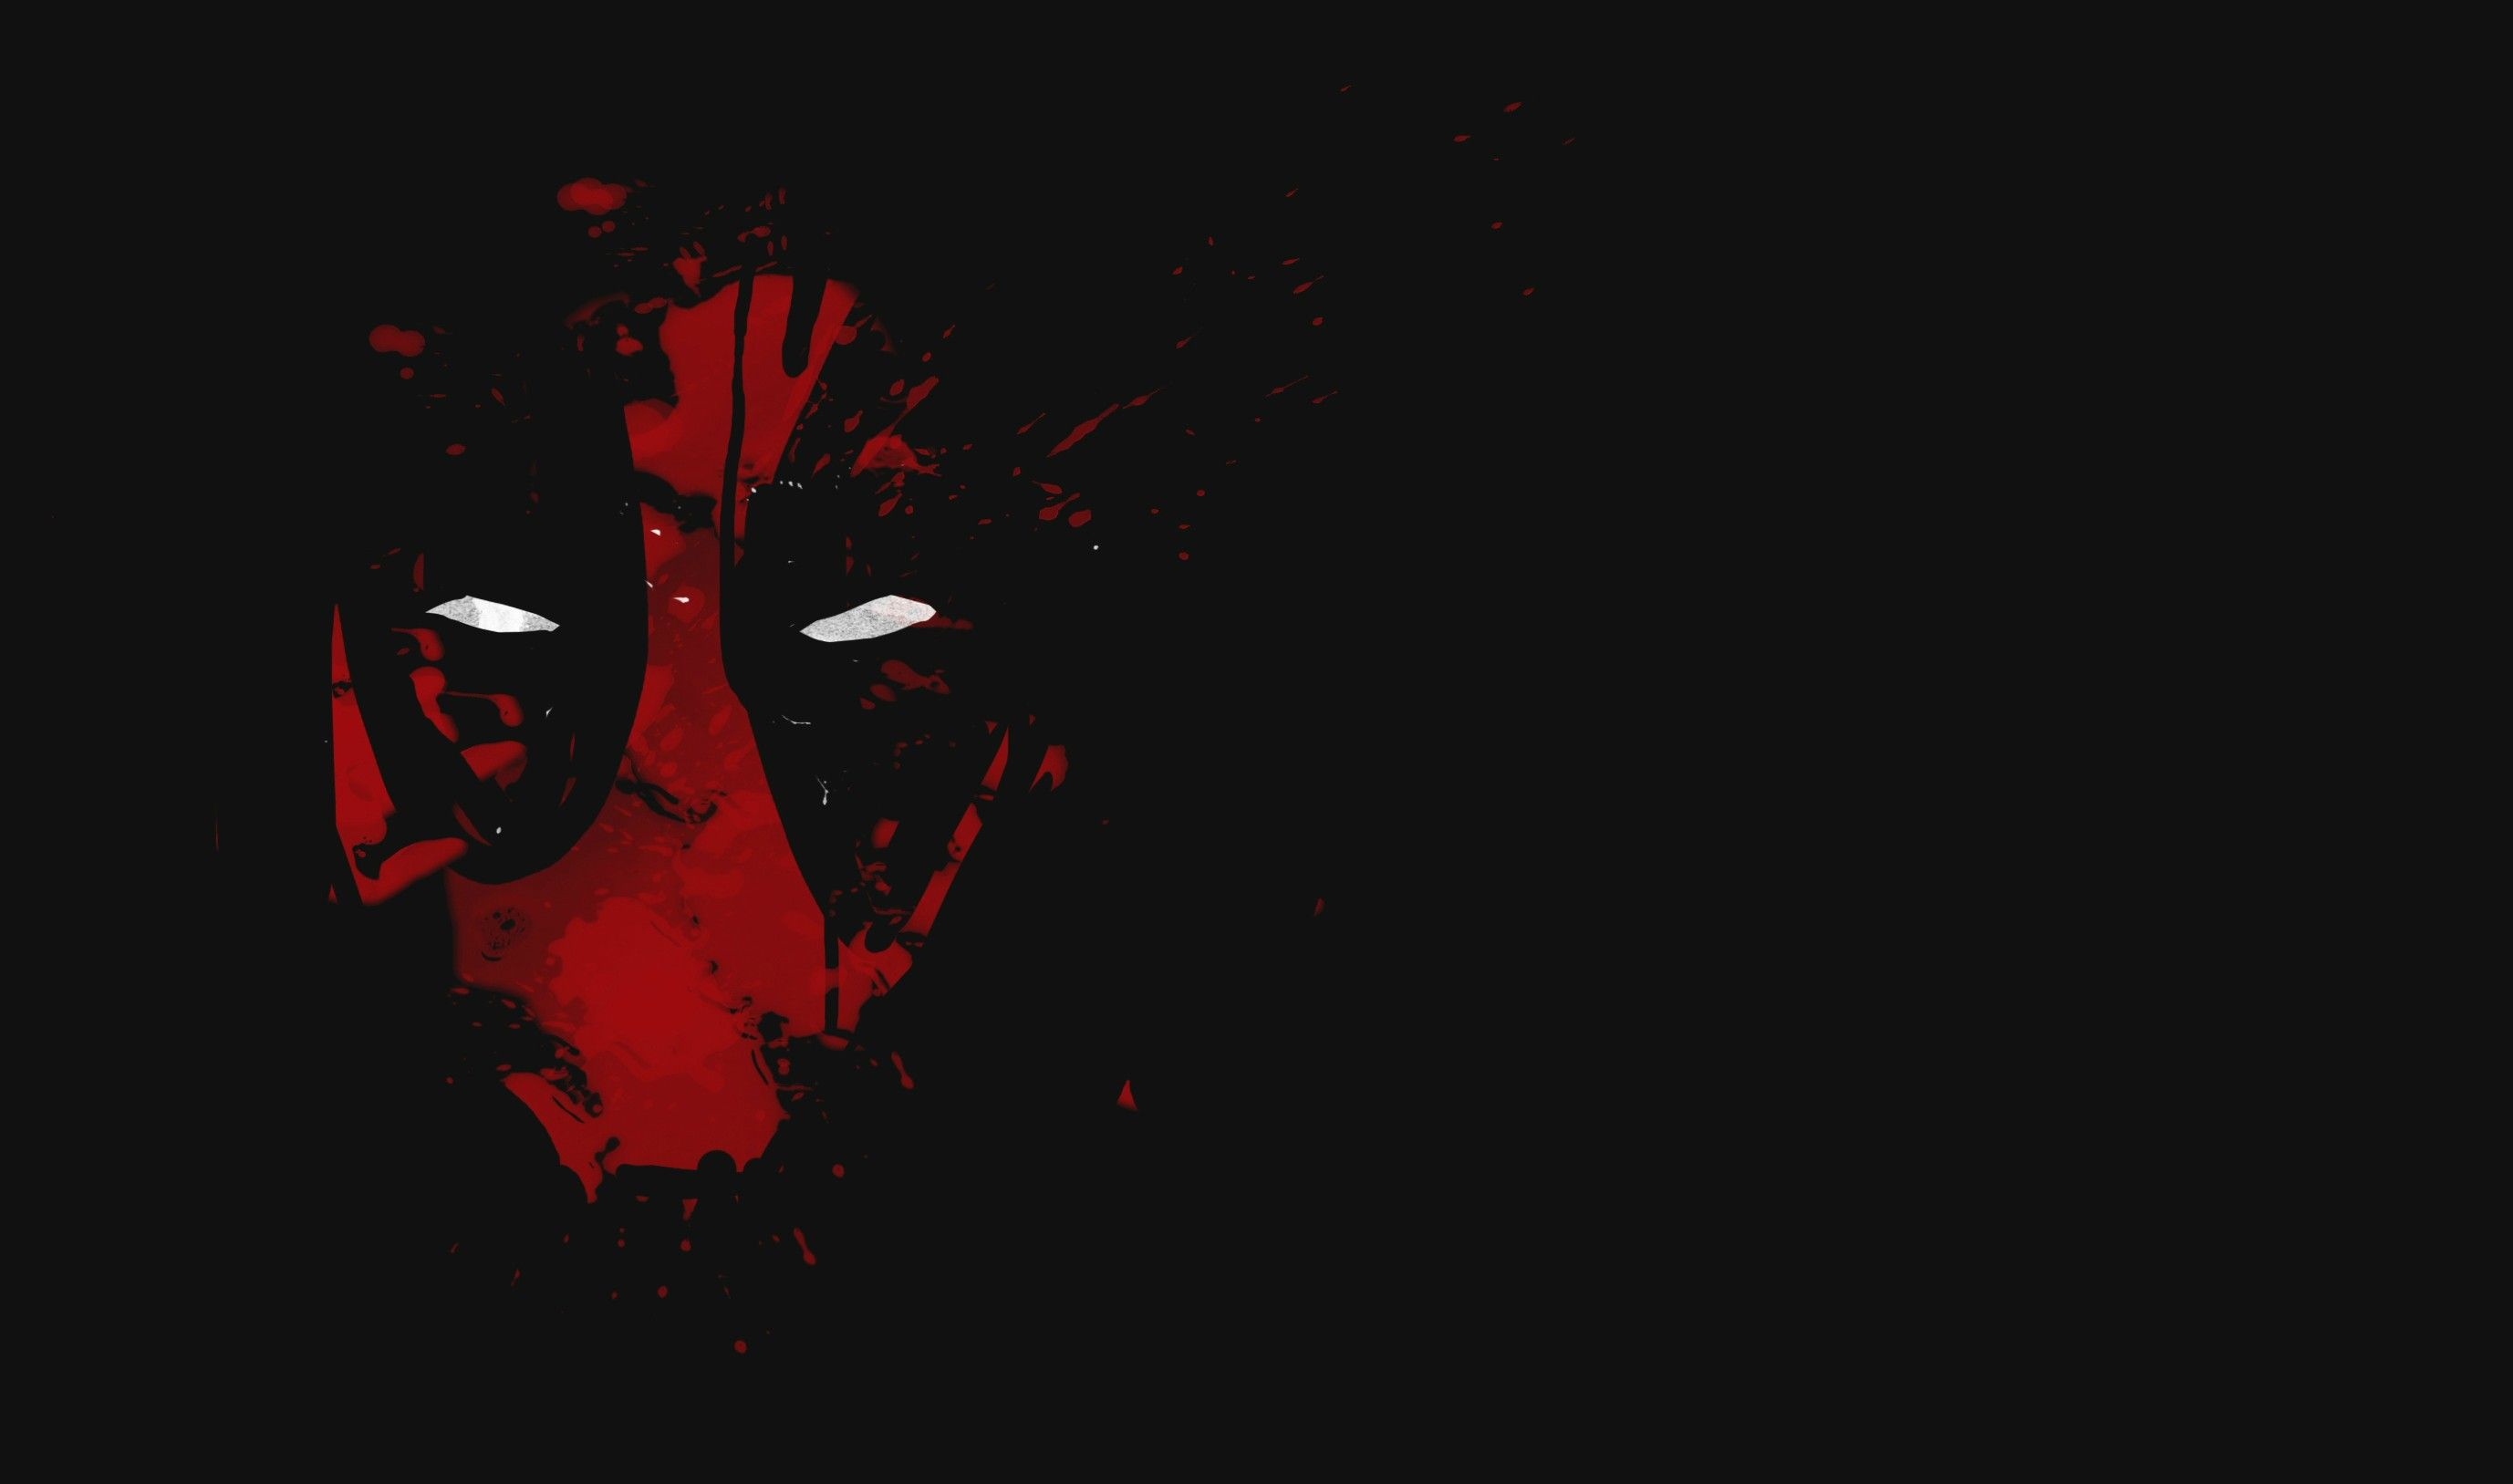 2755x1627 Cool Deadpool Wallpaper with Red Abstract Mask with White Eyes in ...